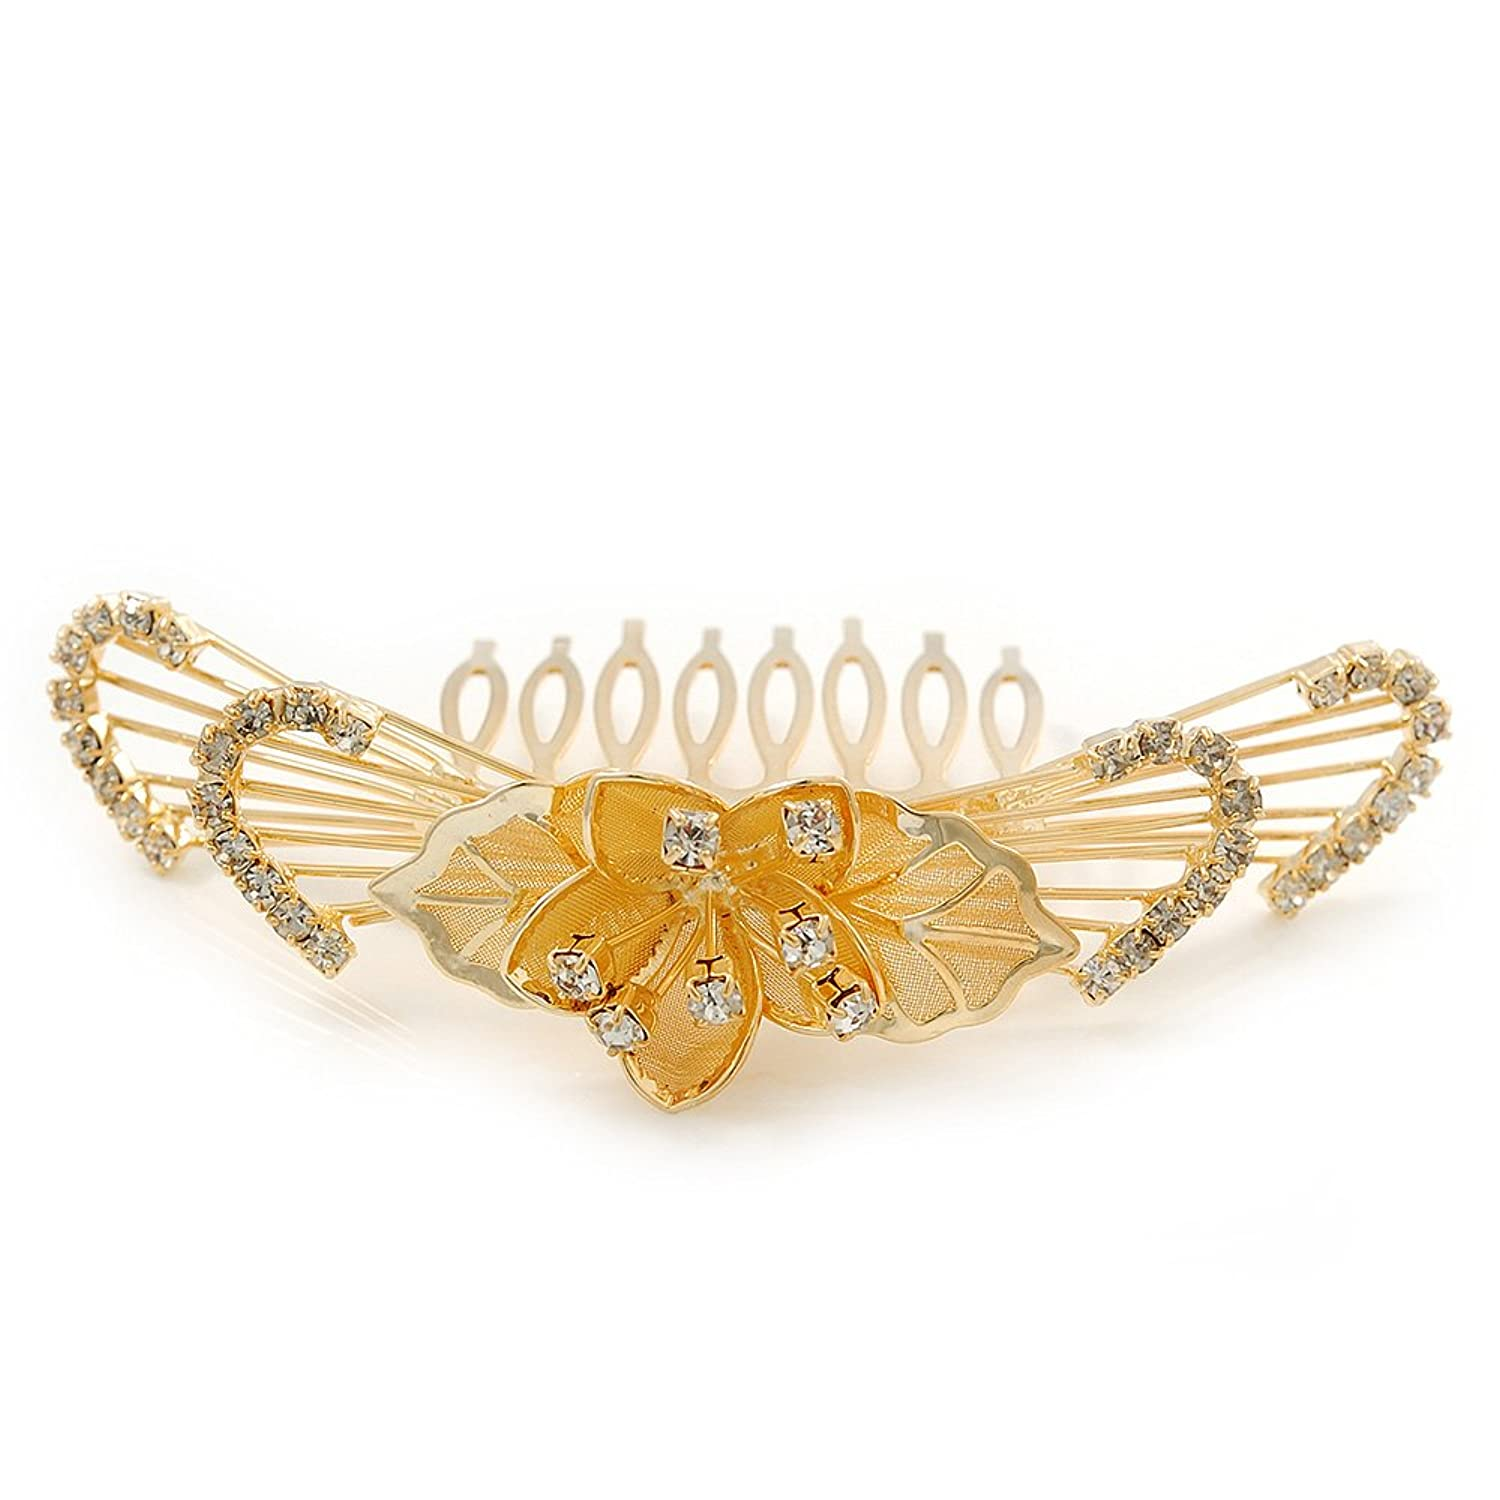 'Calla Lilly' Bridal/ Wedding/ Prom/ Party Gold Plated Clear Swarovski Crystal Floral Hair Comb - 100mm